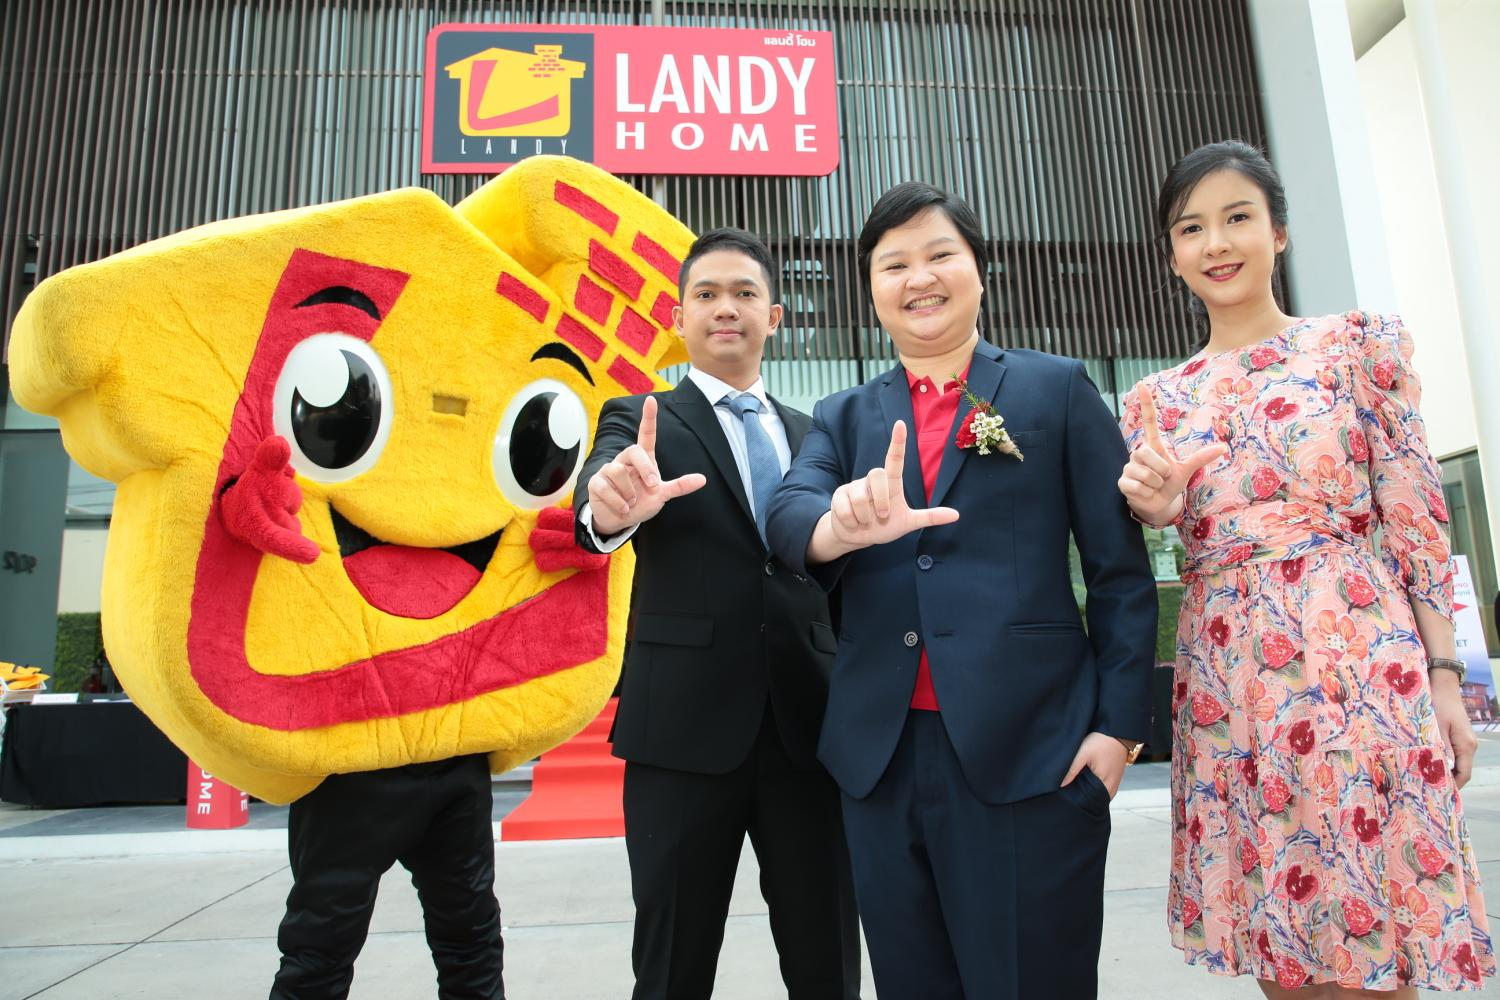 Landy Home targets 15% growth in sales